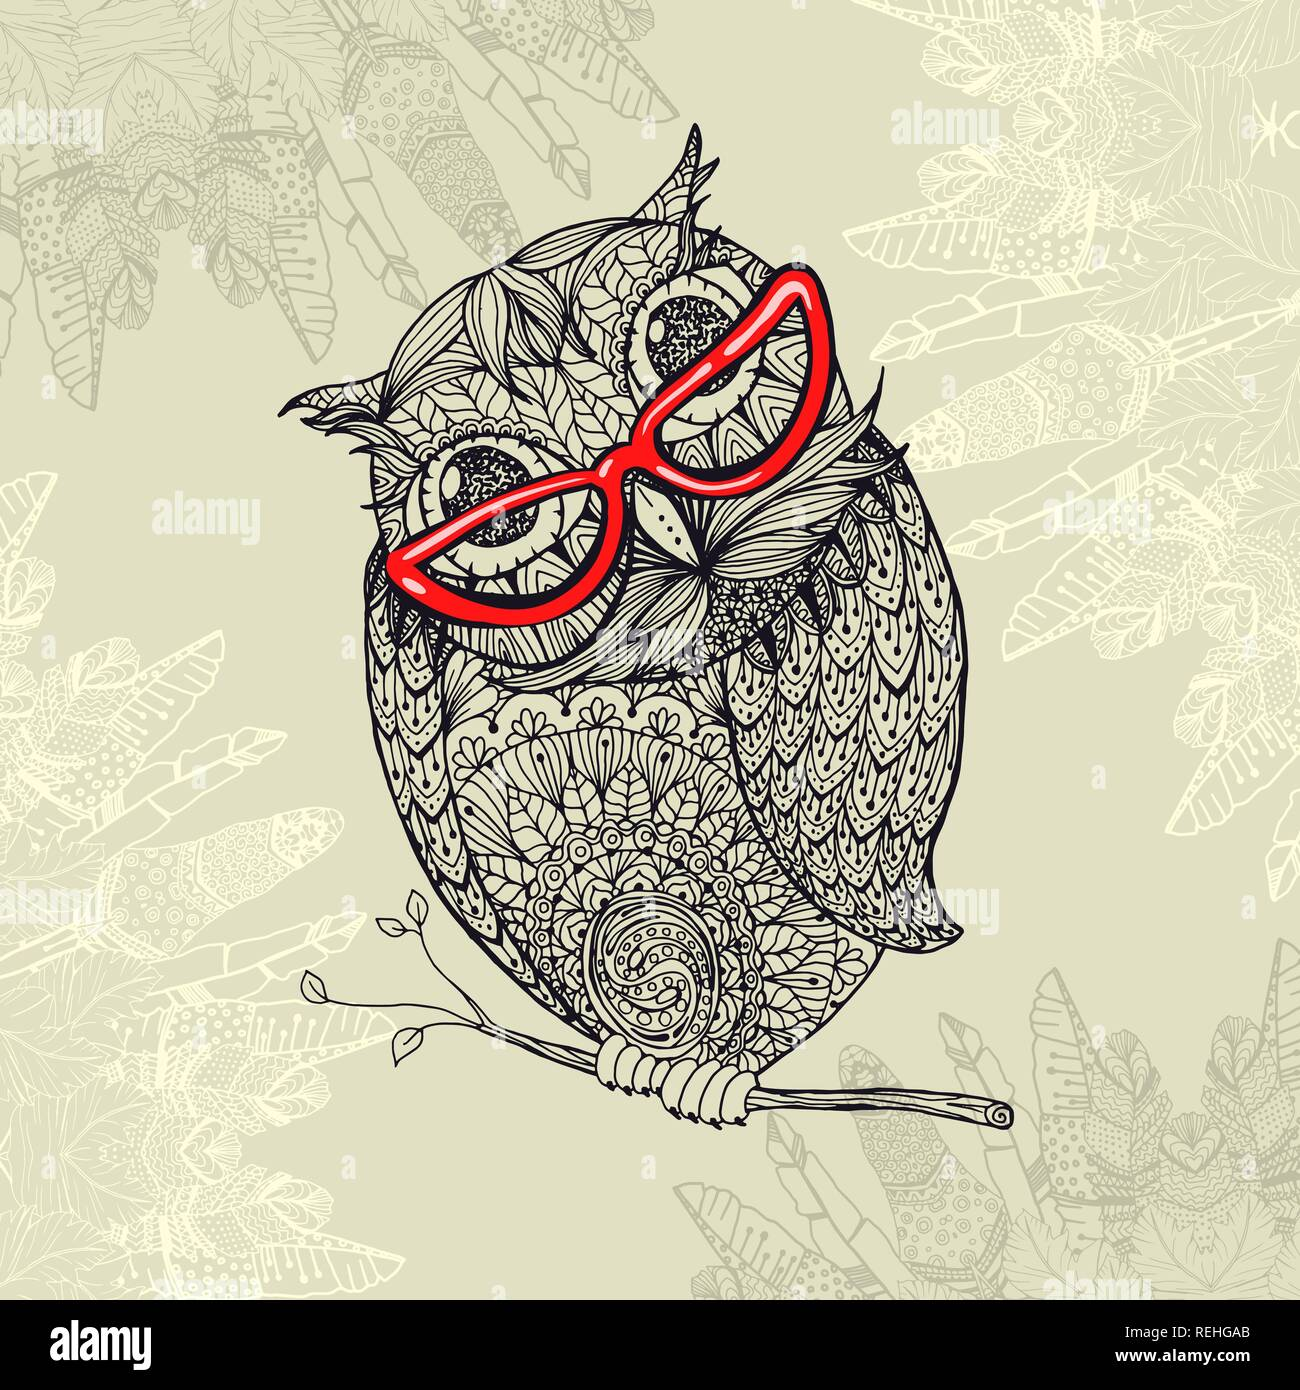 Doodle Style Owl In Red Eyeglasses Illustration With Ornaments Fill For Adult Coloring Book Page Design Antistress Ink Drawing Or Tshirt Print Design Fabric Textile Stock Vector Image Art Alamy